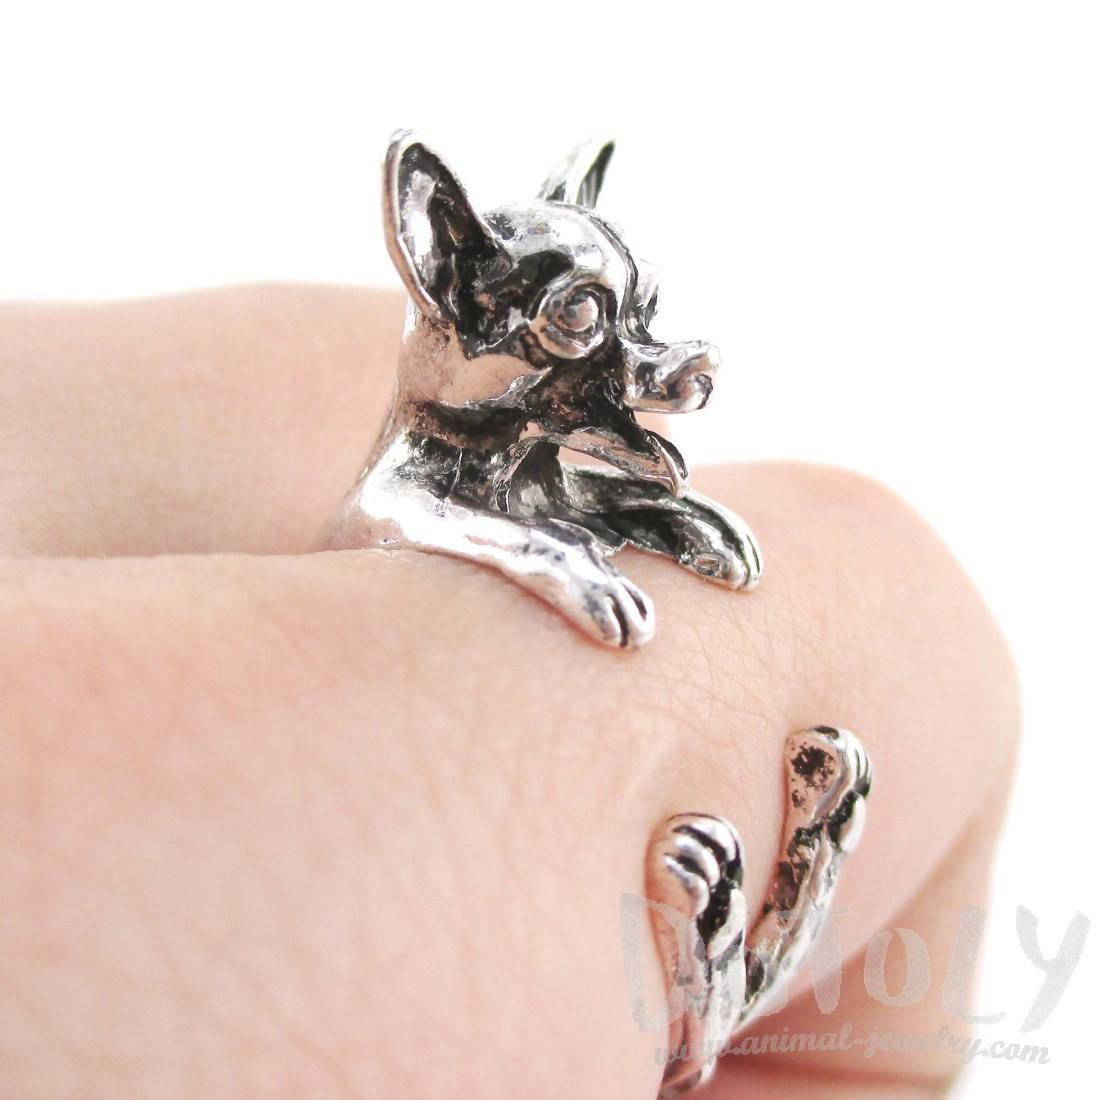 Chihuahua Dog Shaped Animal Wrap Around Ring in Silver